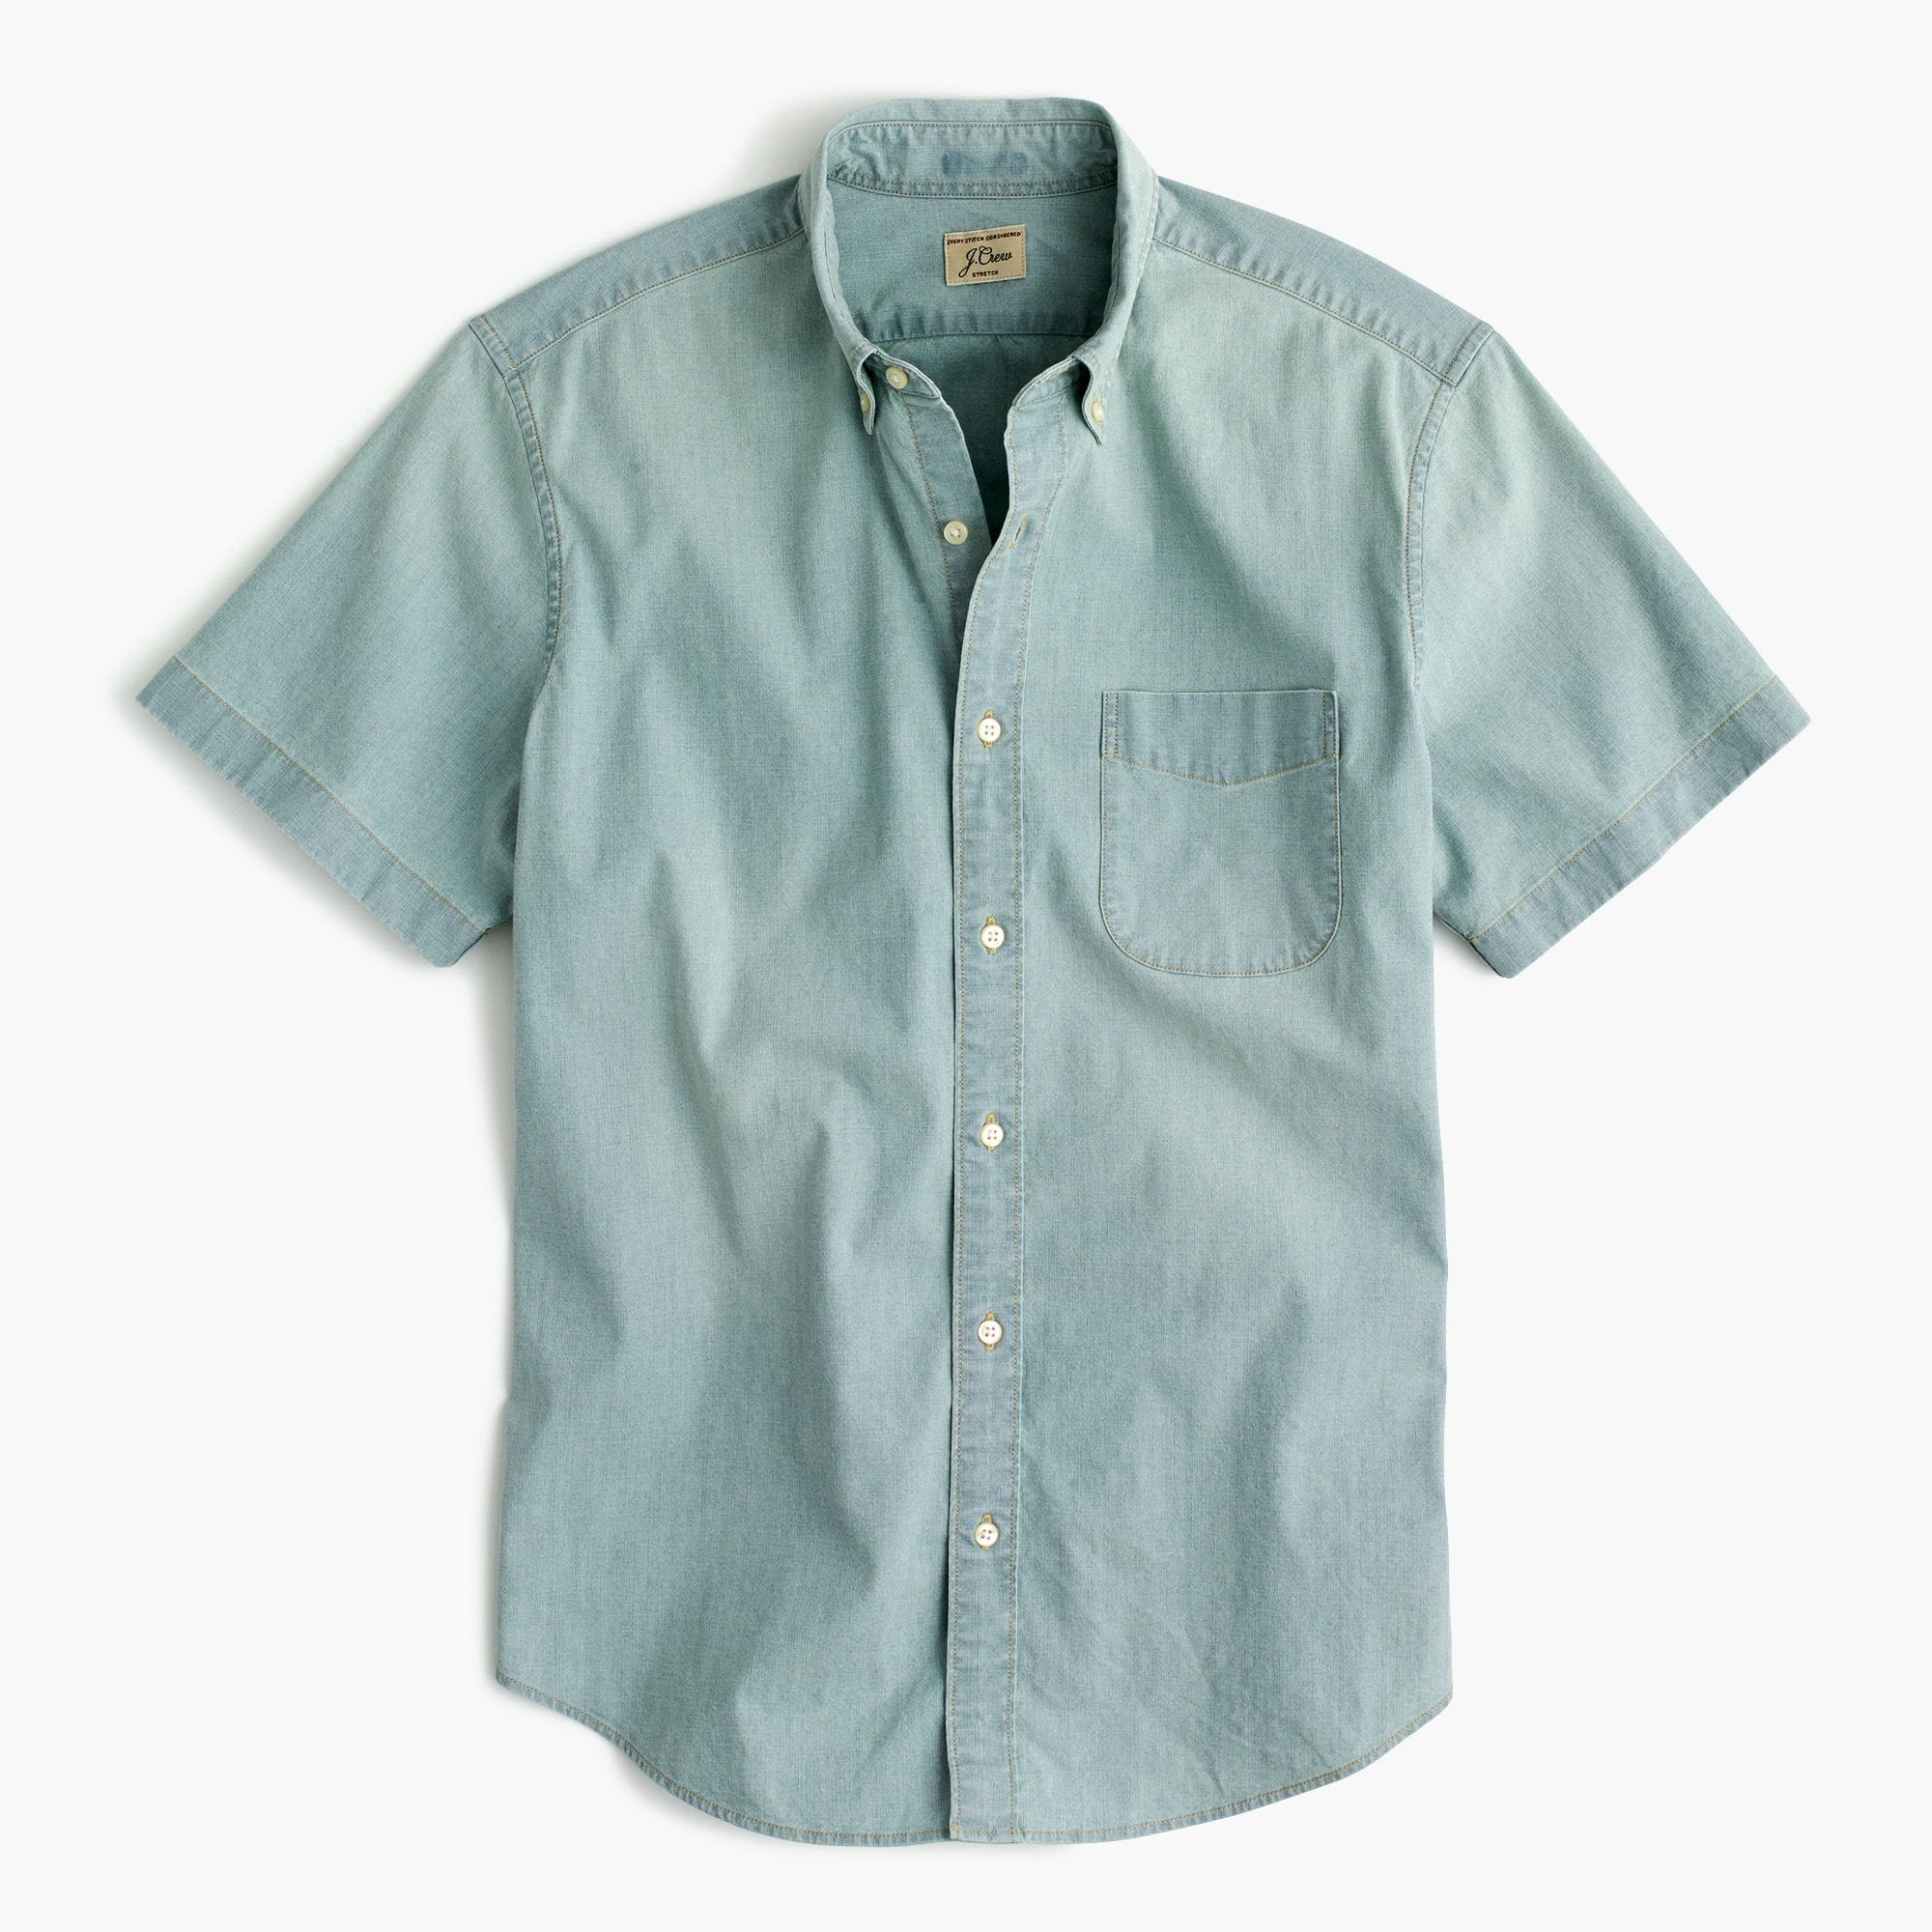 mens Slim stretch short-sleeve shirt in light wash chambray